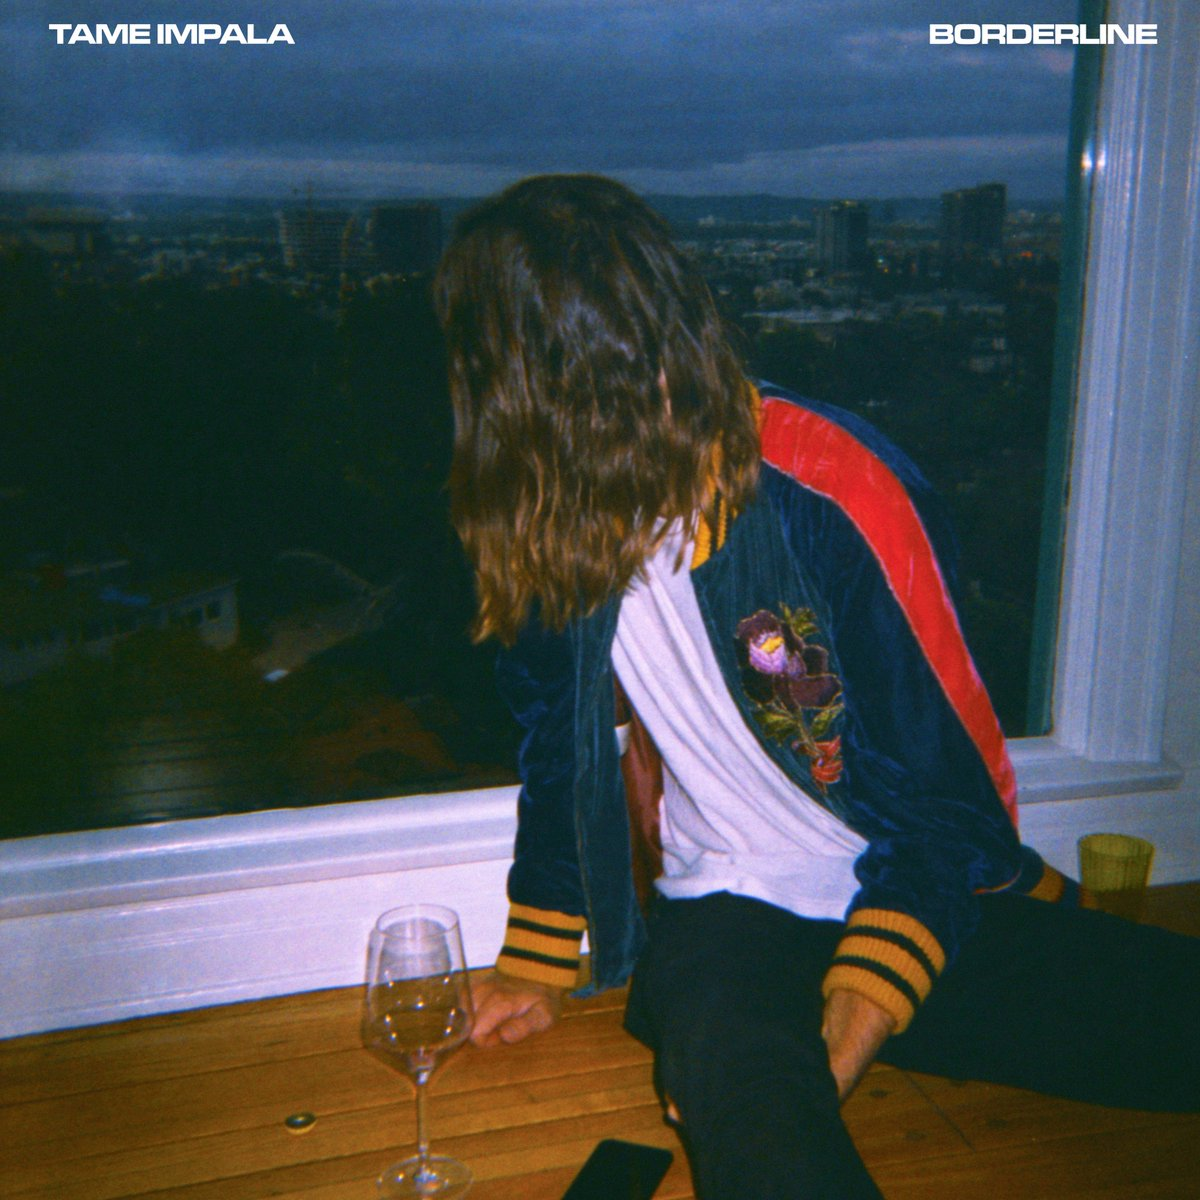 Borderline is out now - tameimpala.lnk.to/Borderline